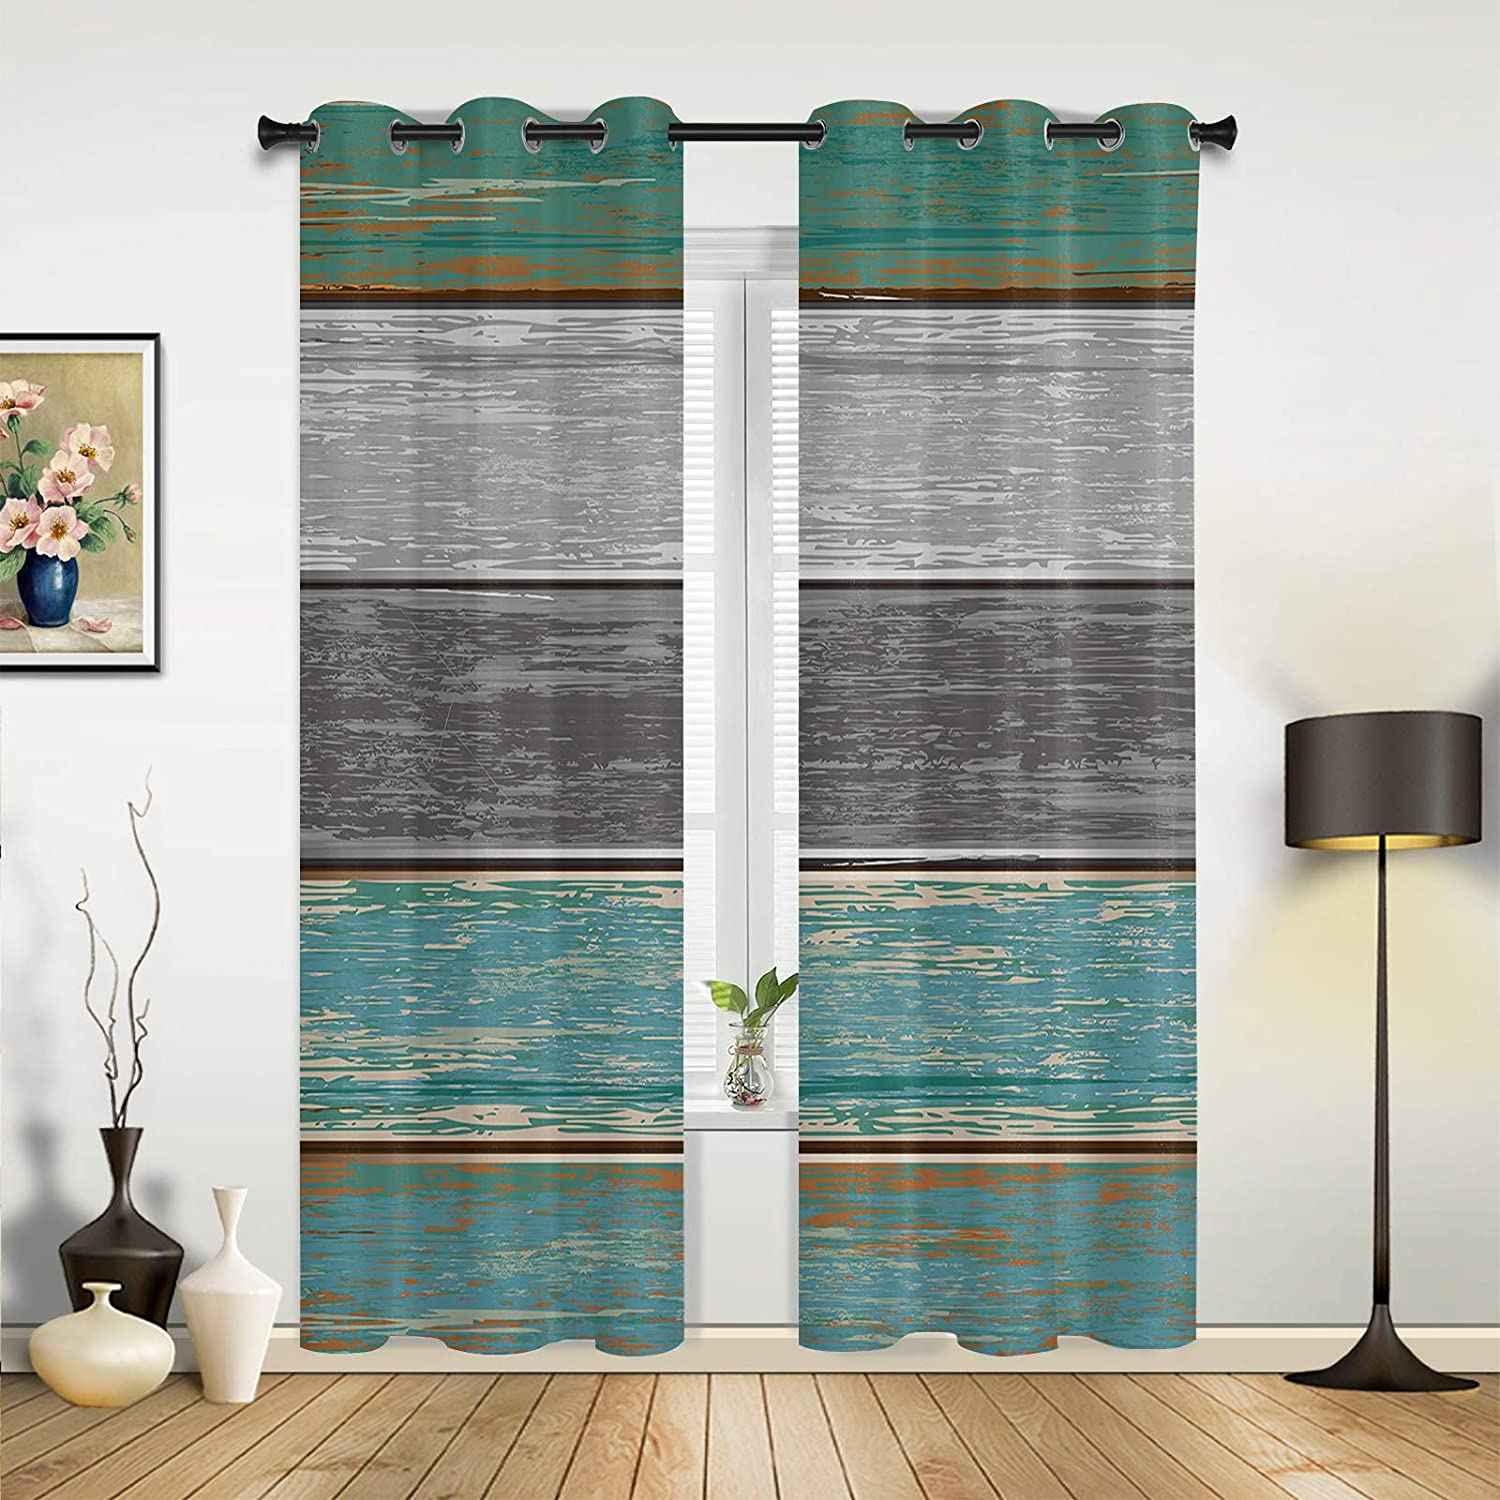 Window Sheer Curtains for 2021new shipping free shipping Bedroom Living Farm Room G Under blast sales Retro Green